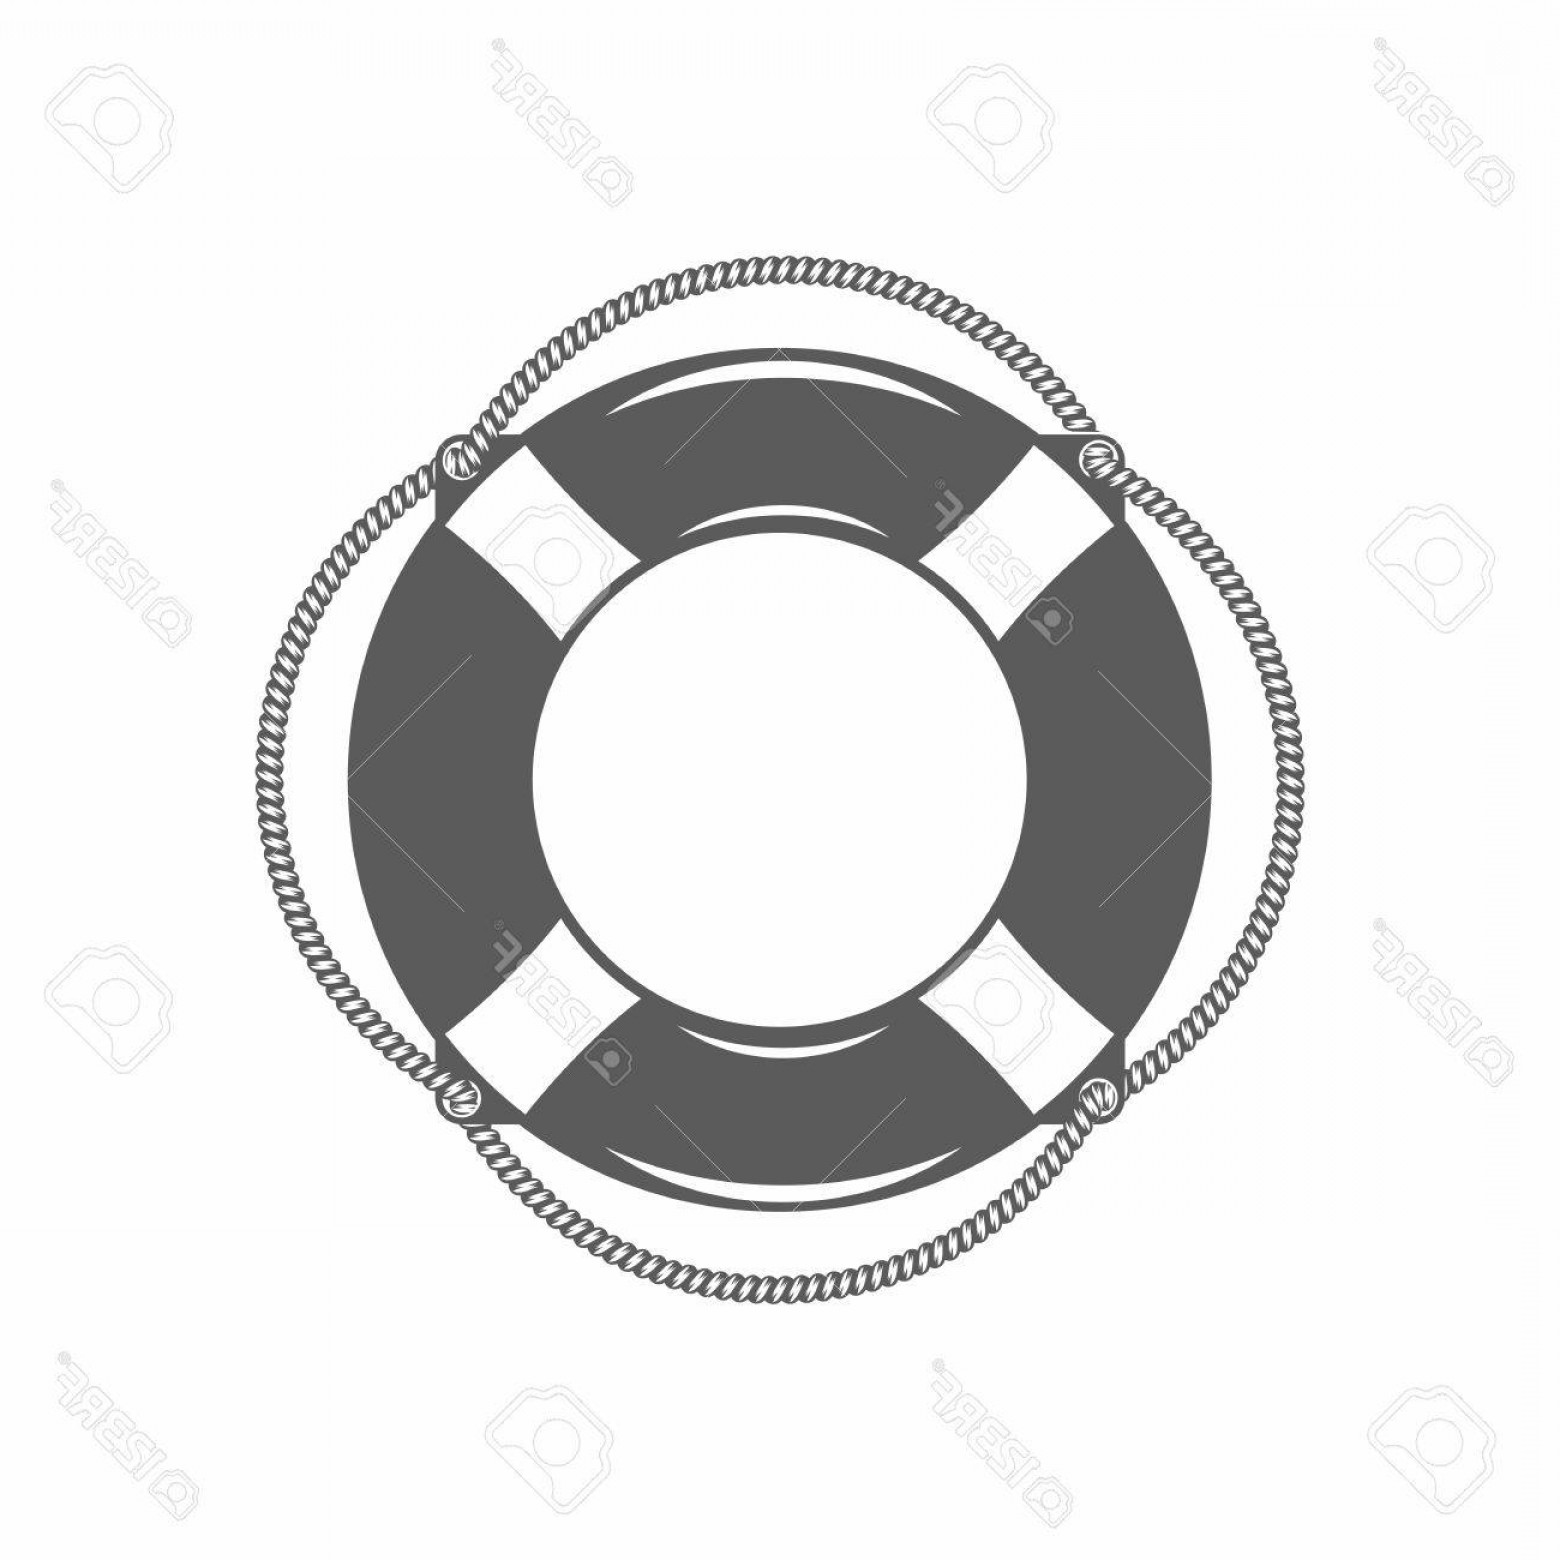 Old Lifesaver Stripe Vectors: Photostock Vector Vector Illustration Of The Lifebuoy In Black And White In The Old Fashioned Style And Line Art Style